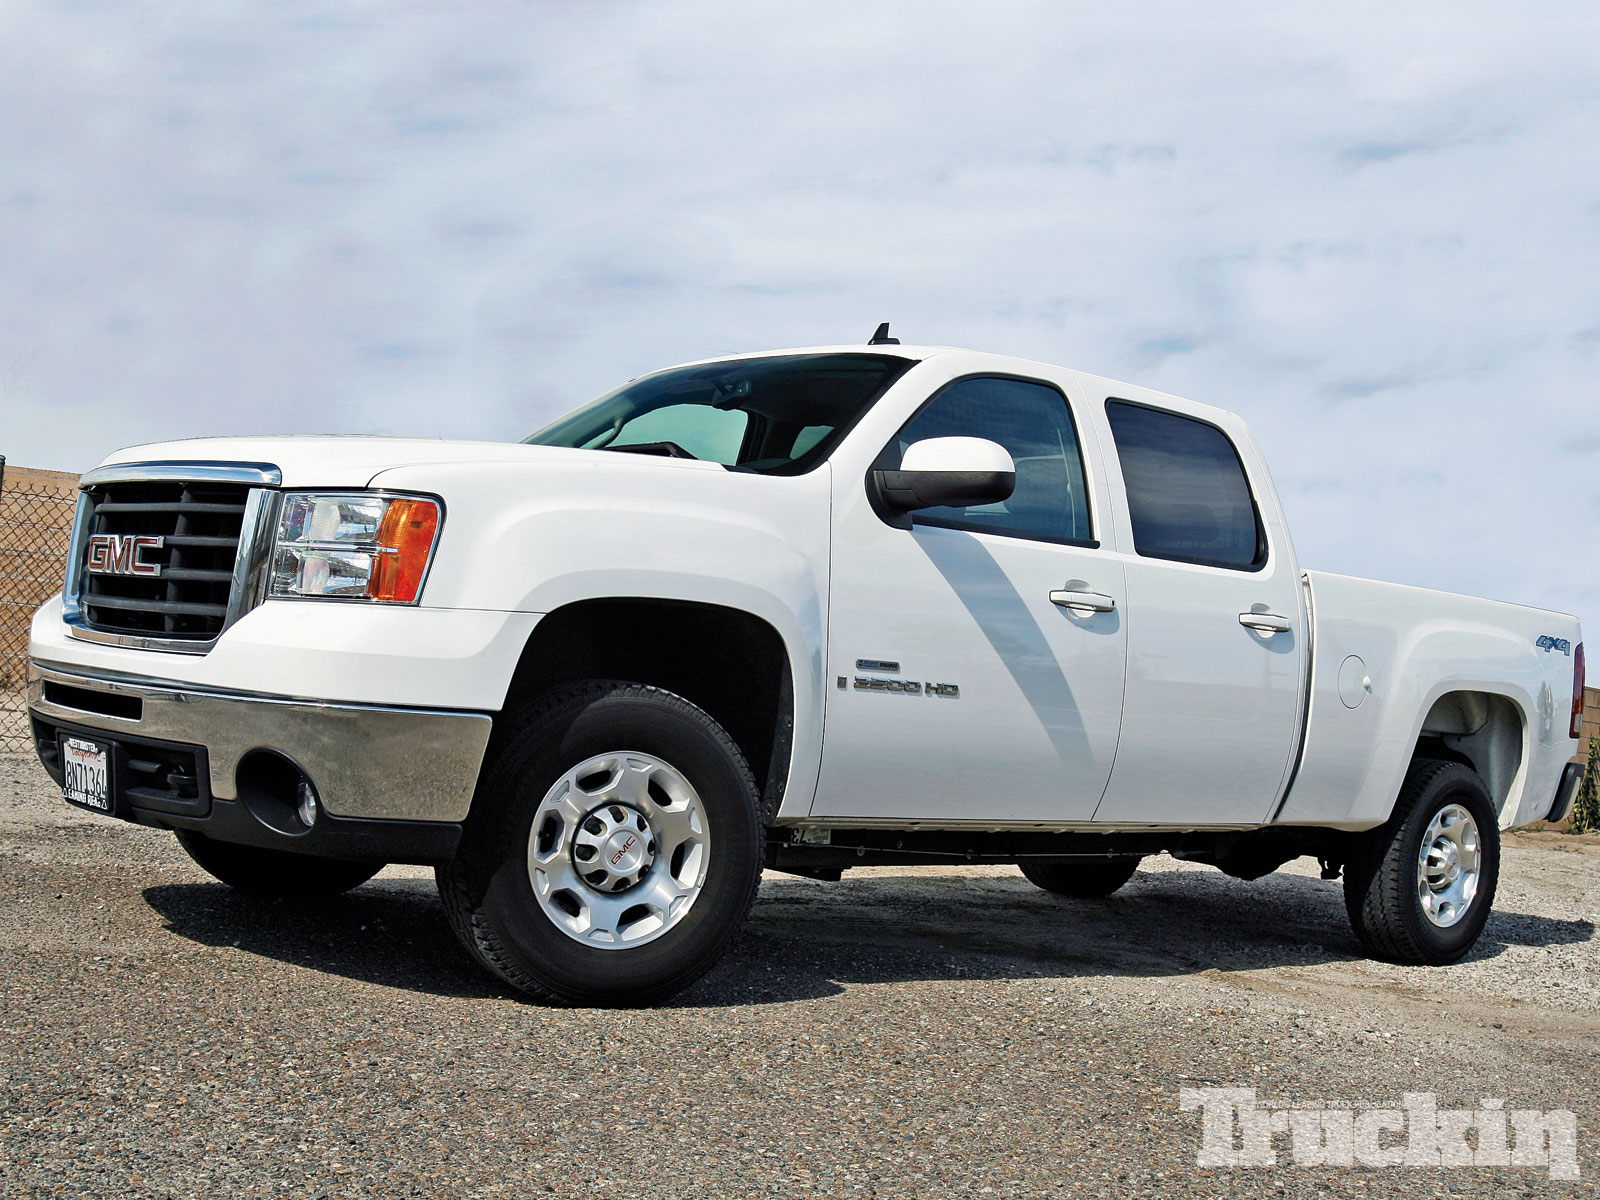 2008 gmc sierra 2500hd information and photos zombiedrive. Black Bedroom Furniture Sets. Home Design Ideas